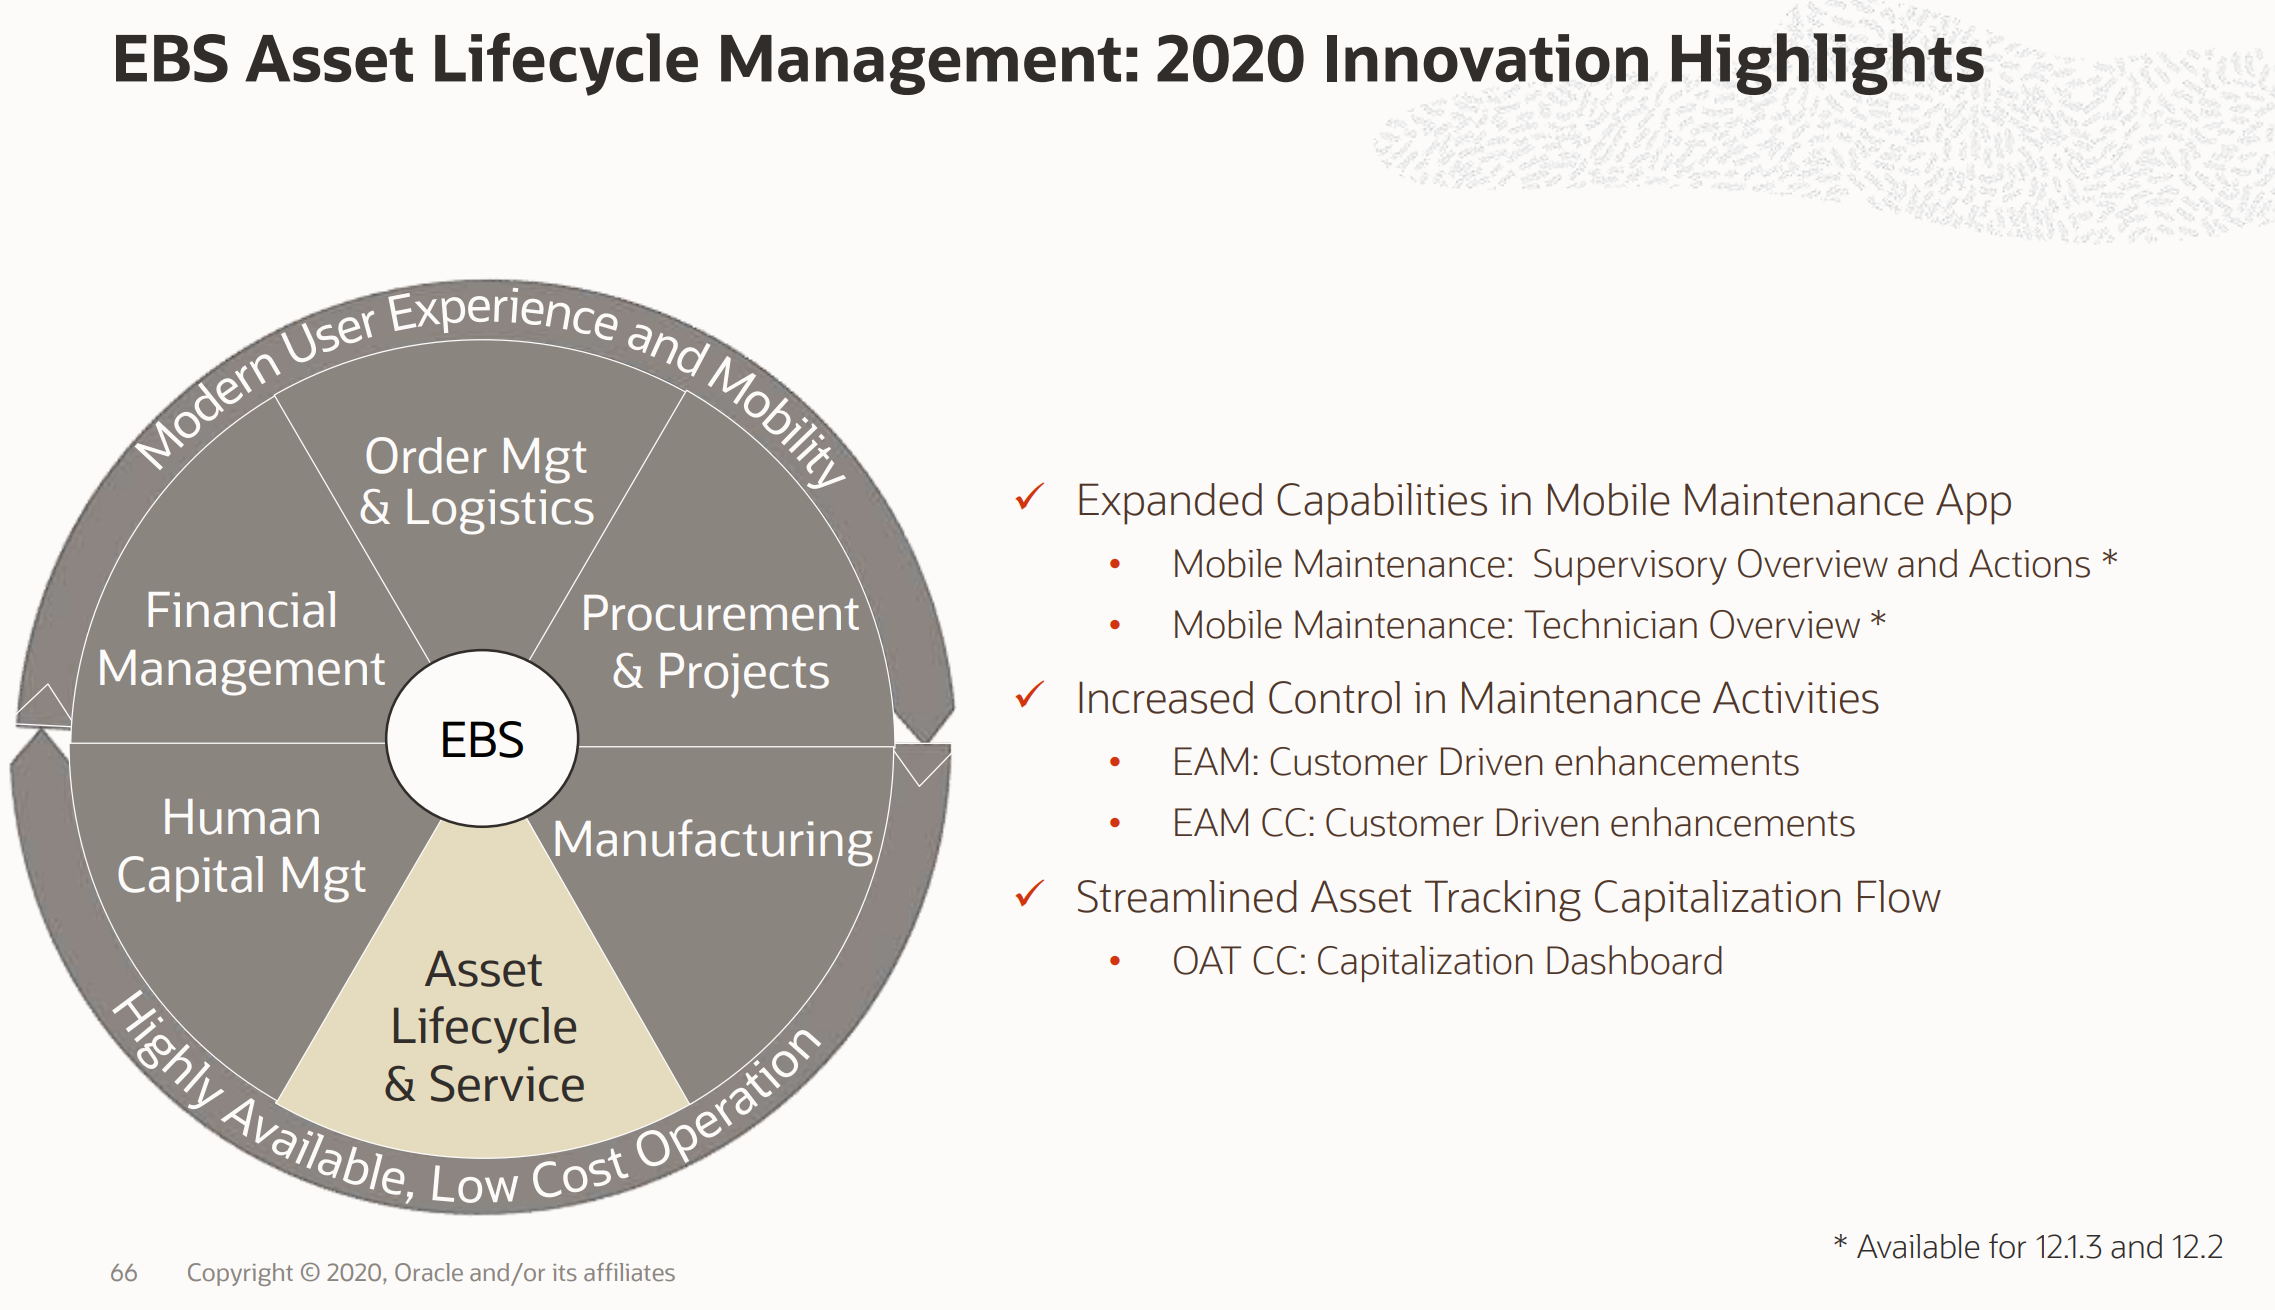 EBS Asset Lifecycle Management 2020 Innovation Highlights